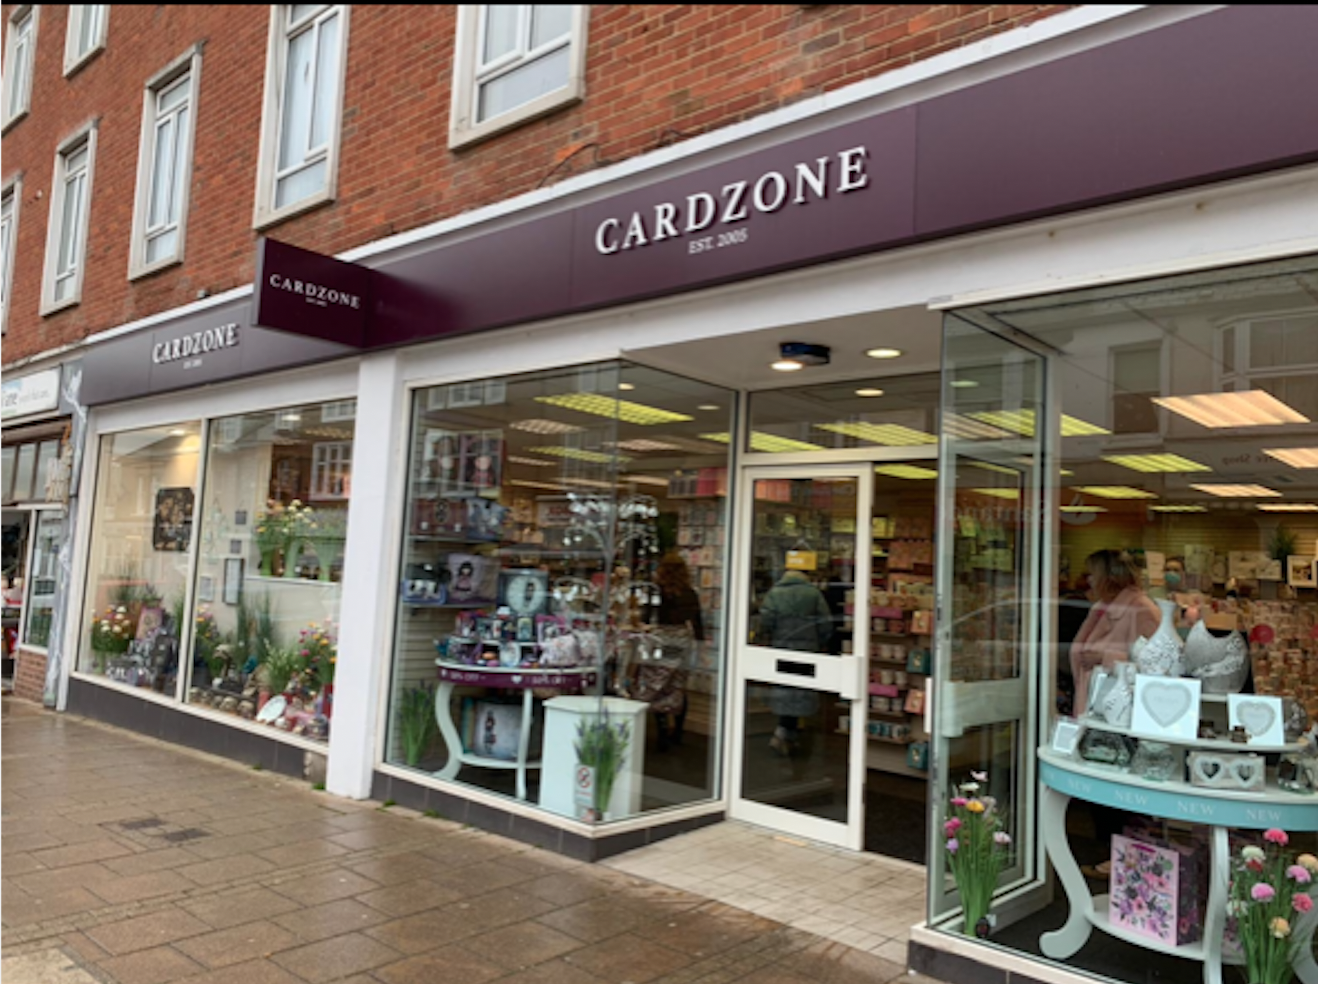 Above: The new Cardzone store in Seaford.